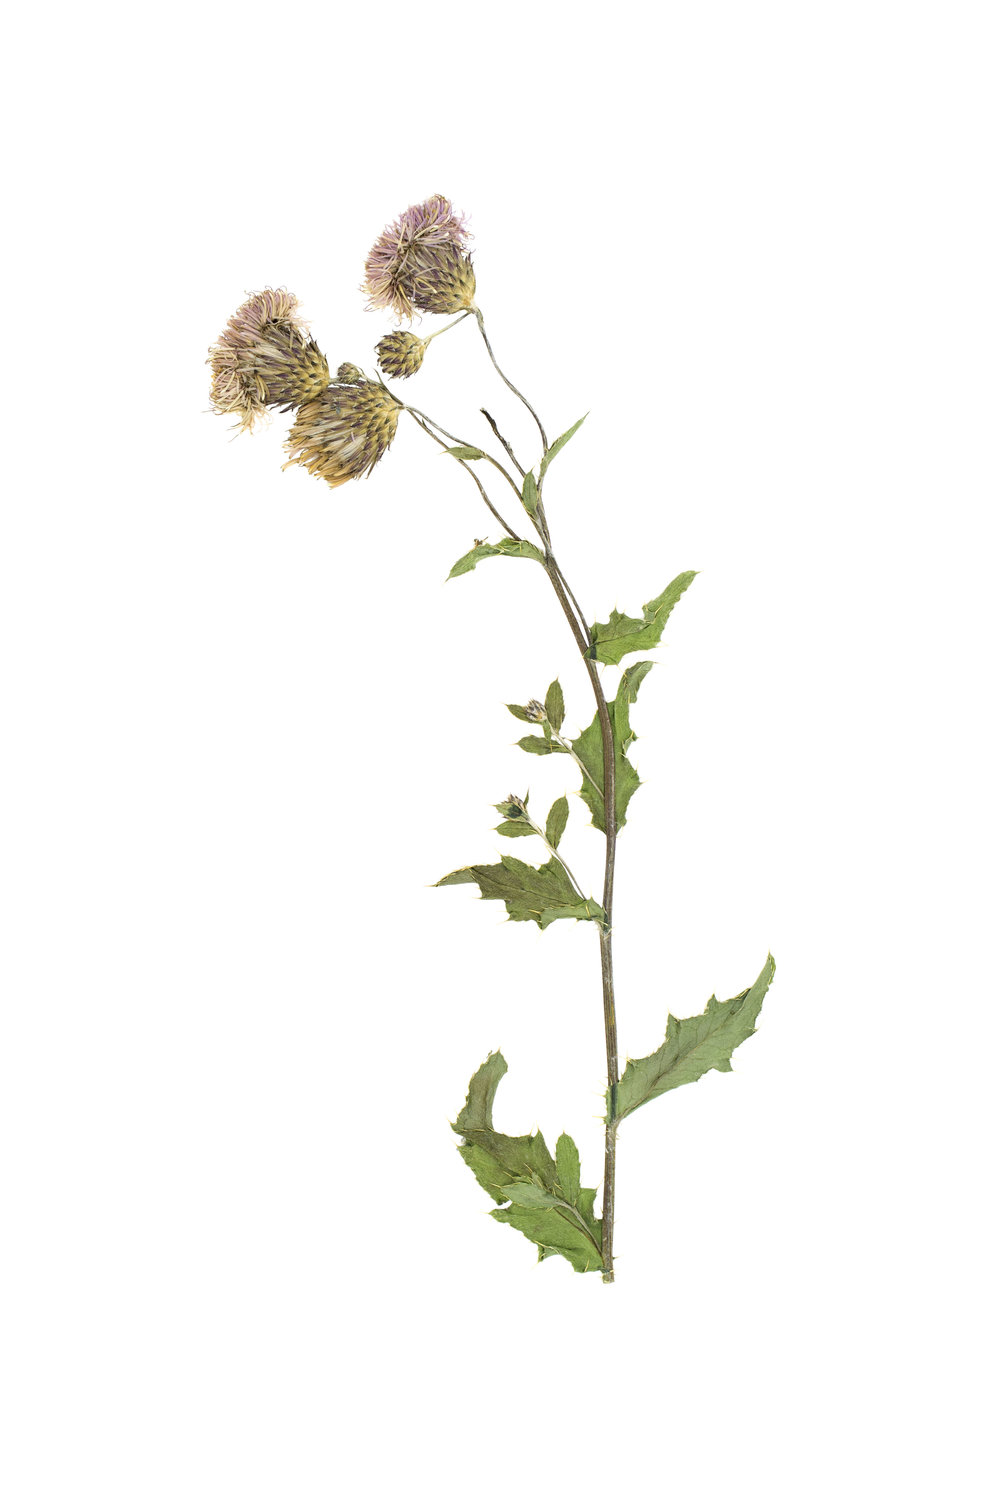 New! Creeping Thistle / Cirsium arvense